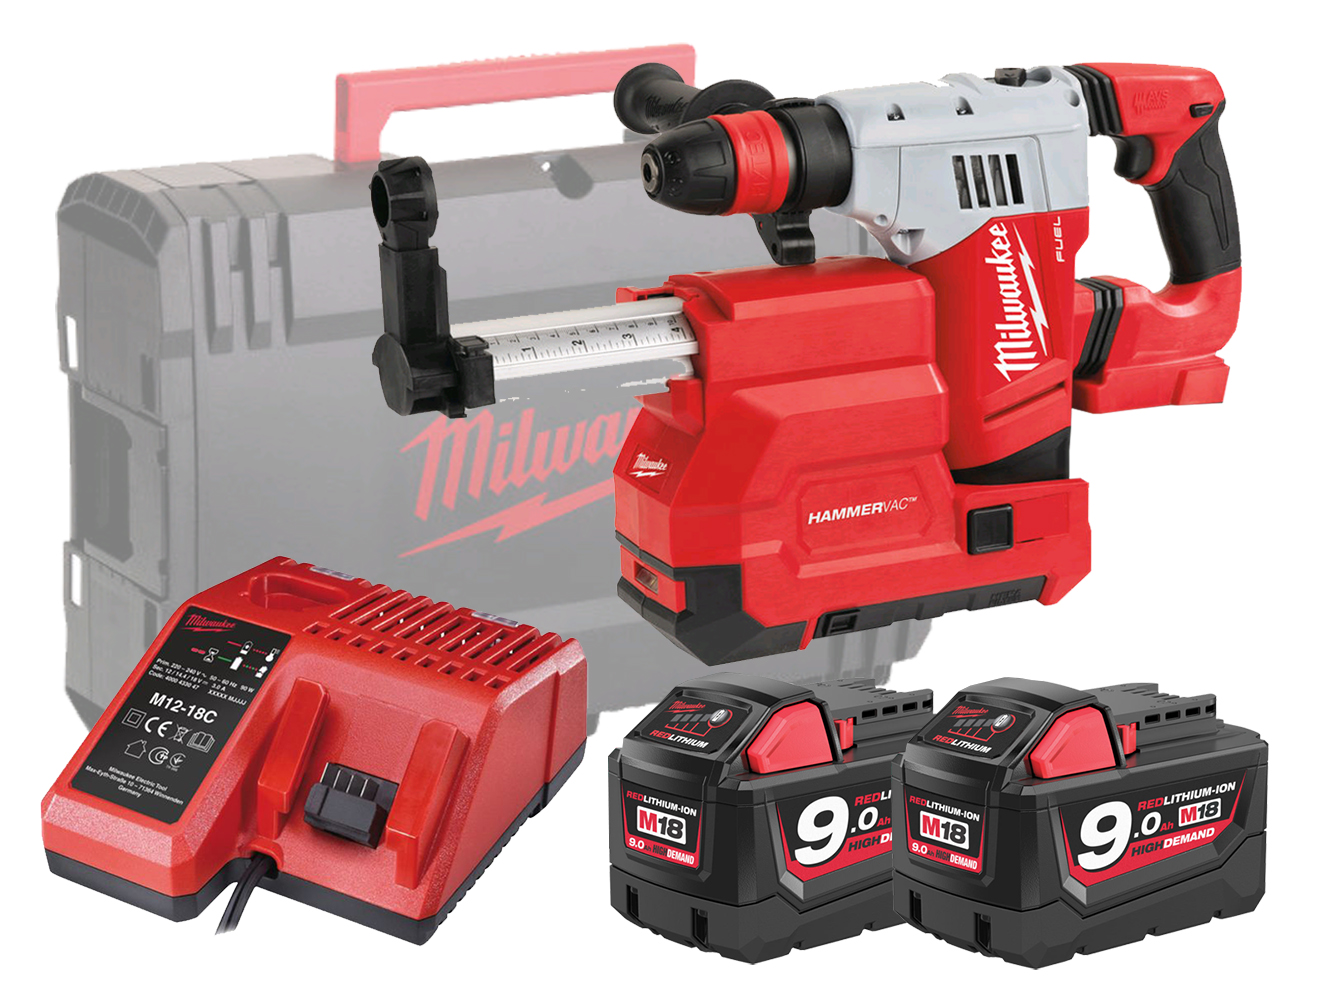 MILWAUKEE 18V FUEL SDS+ HAMMER & DUST EXTRACTOR - M18CHPXDE - 9.0AH PACK